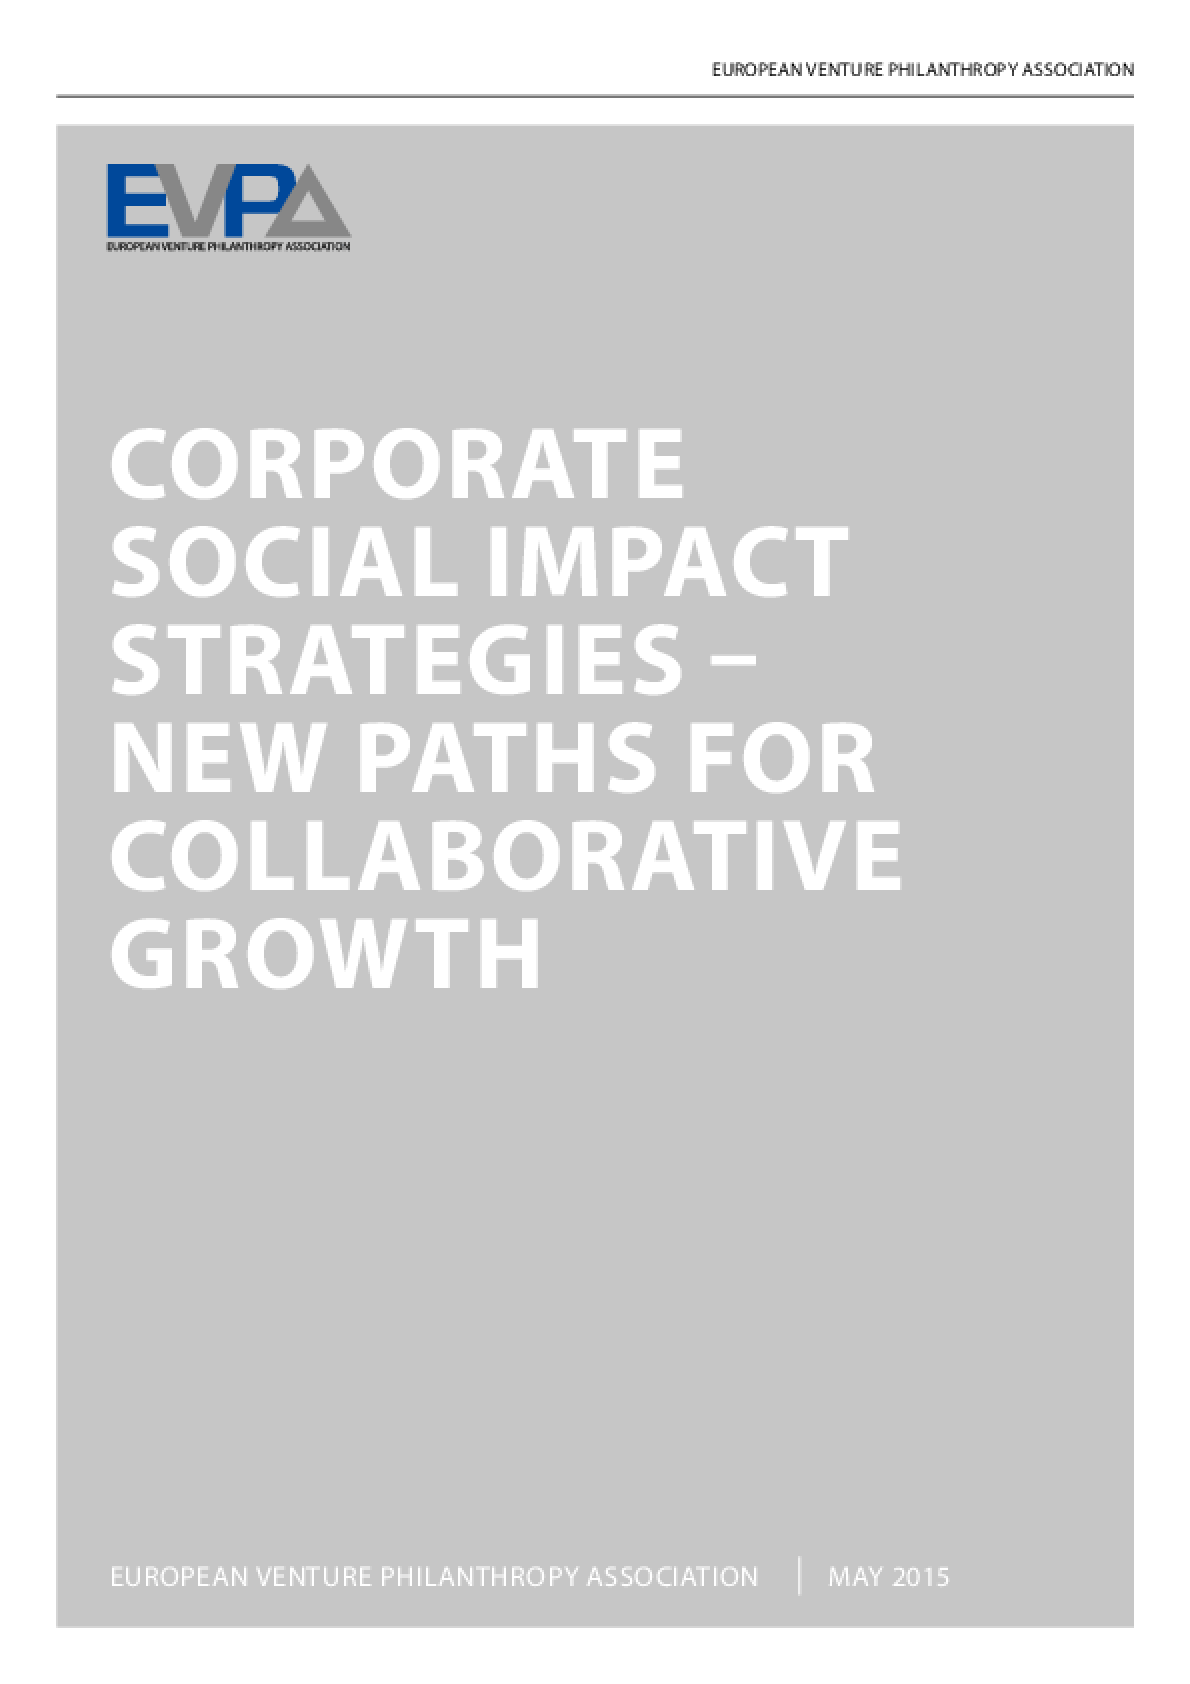 Corporate Social Impact Strategies: New Paths for Collaborative Growth